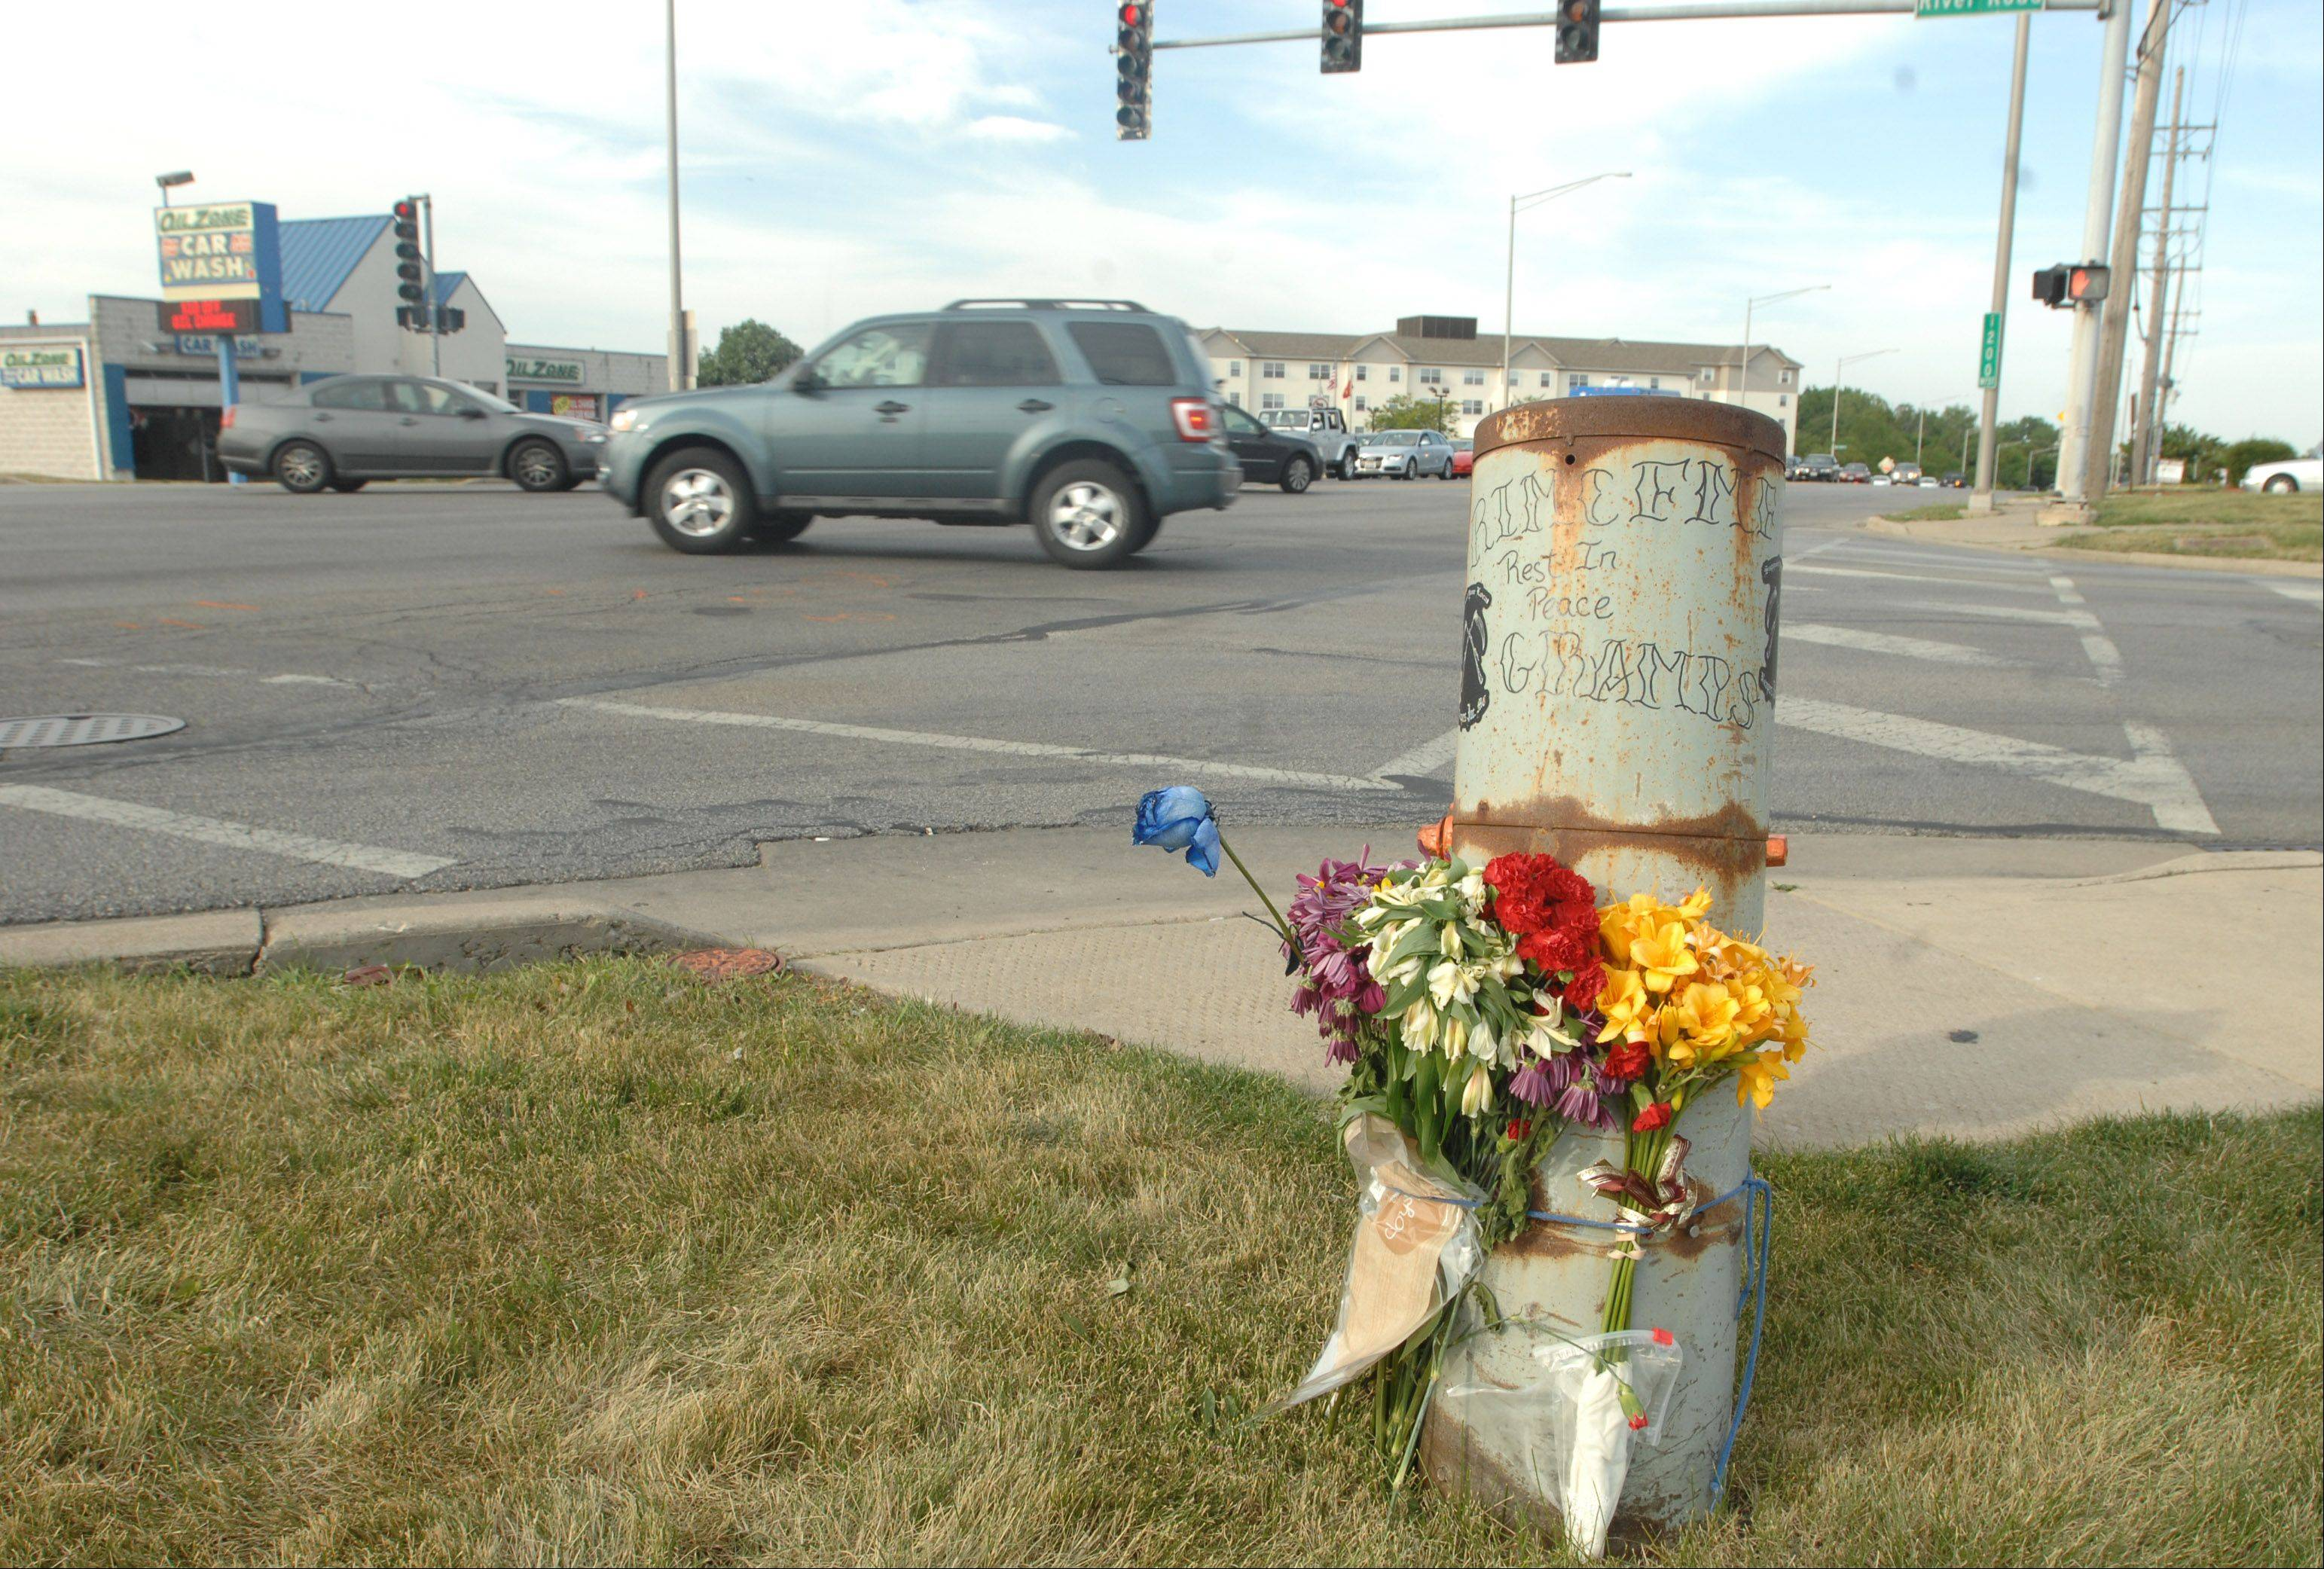 A small memorial was set up at the corner of Ogden Avenue and River Road in Naperville after motorcyclist Gerald Puglise was killed there last June.